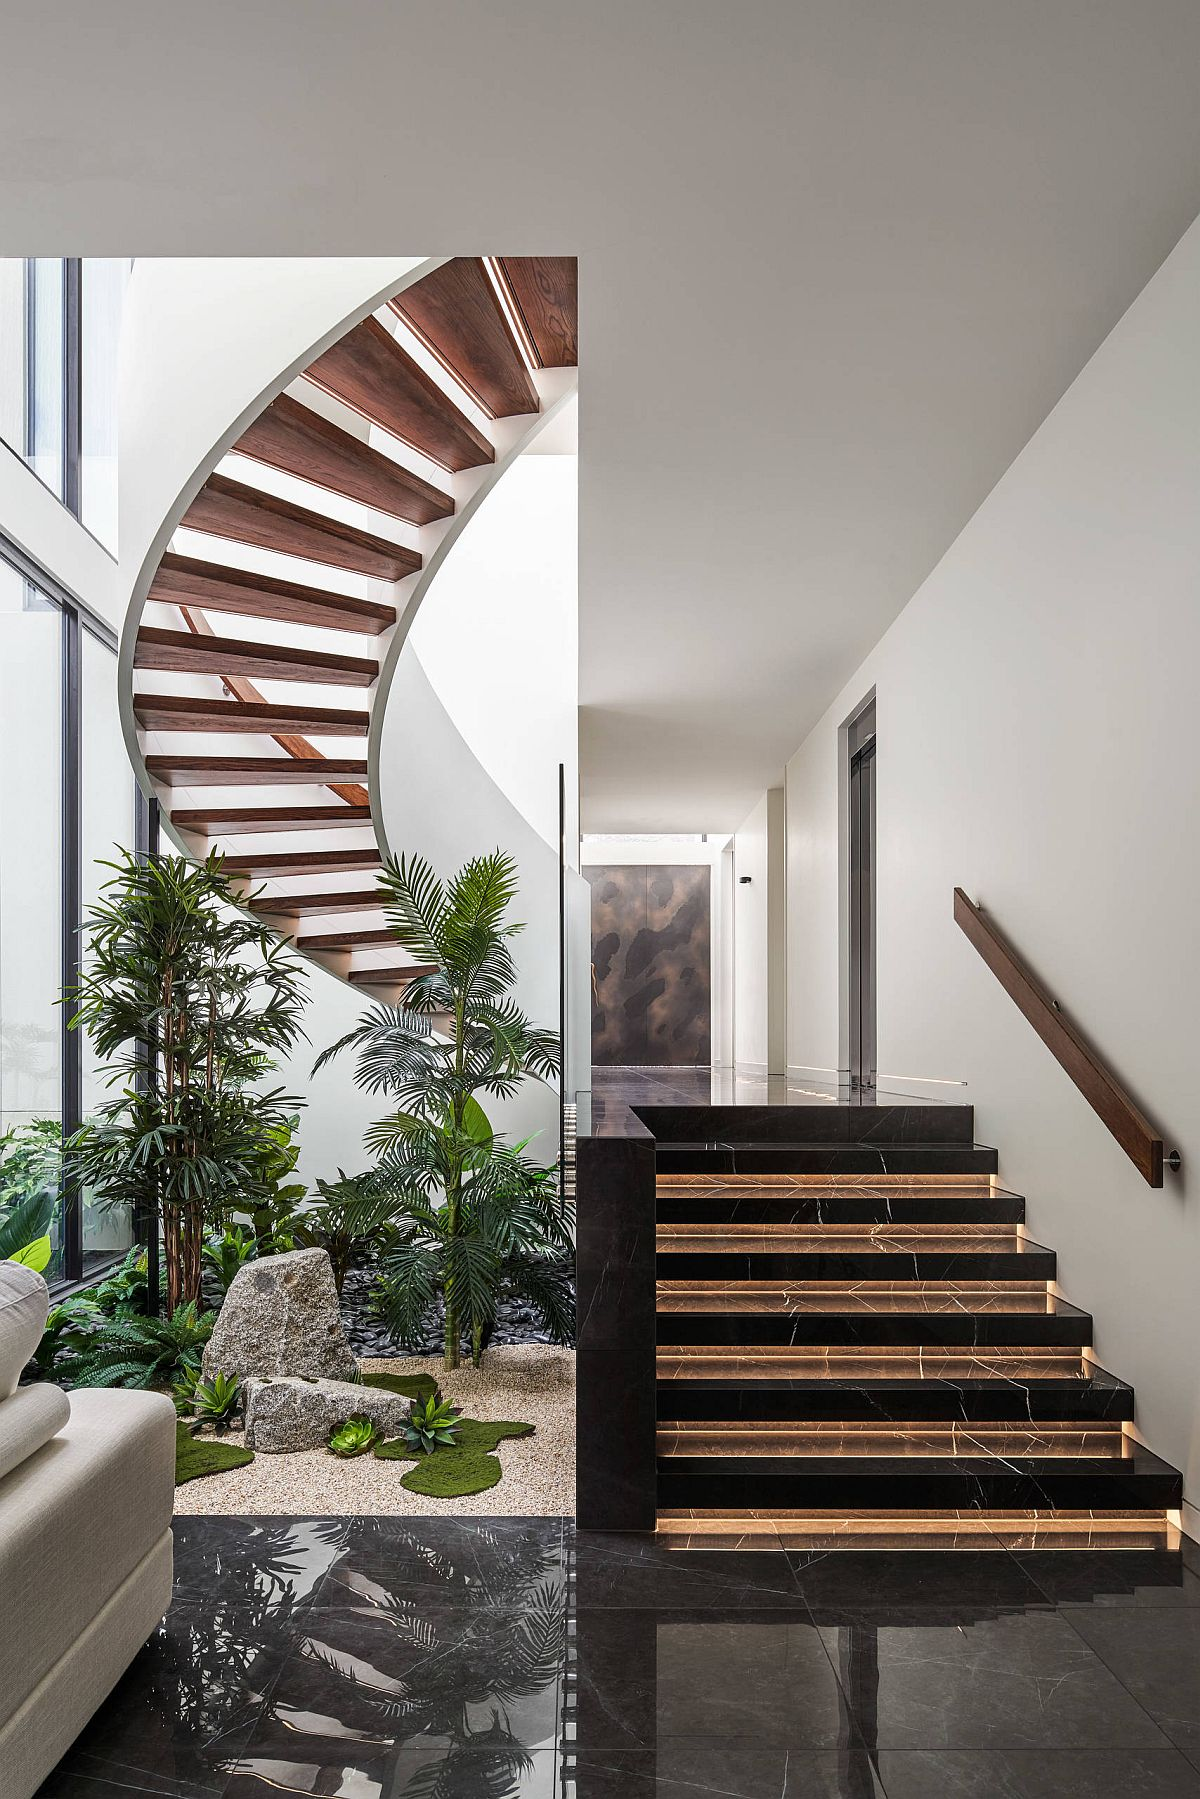 Lovely atrium in green along with a spiral staircase shapes this double-height entry